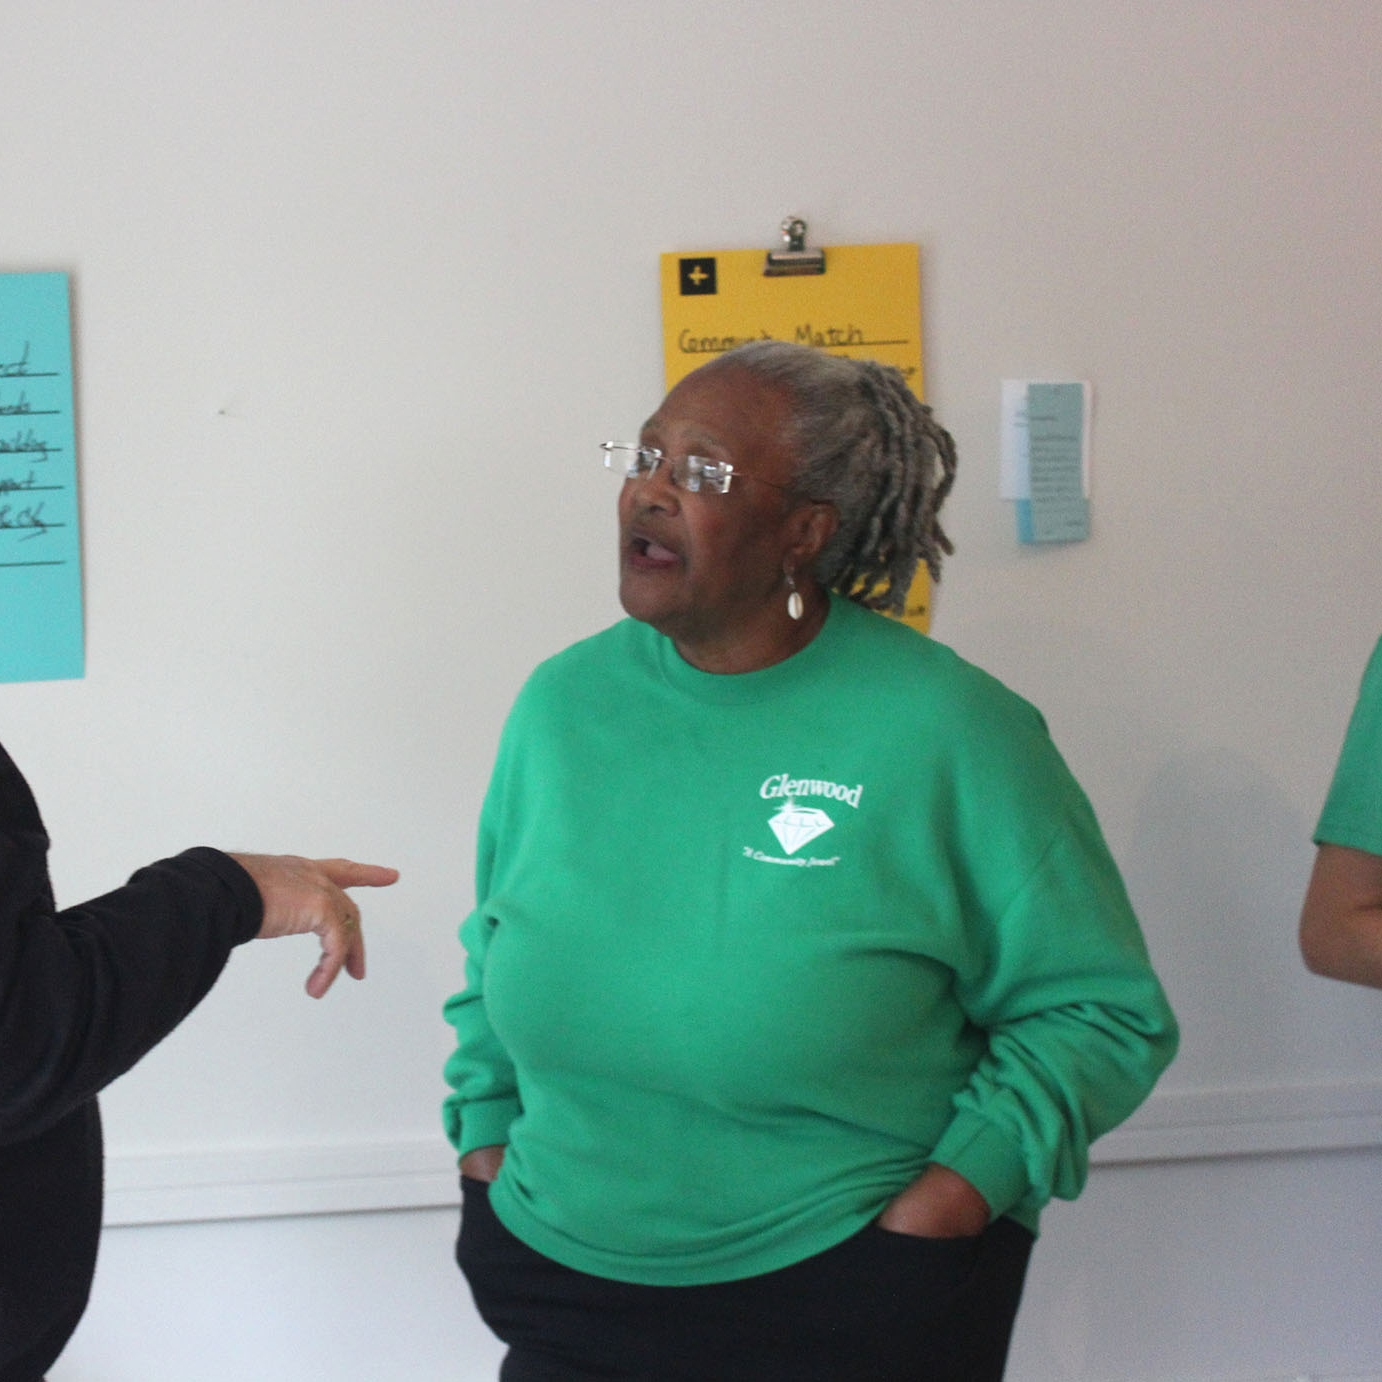 """Block Leaders Connect   Project Leader: Everlena M. Holmes  Block Leaders Connect connects neighborhoods to the city of Chattanooga through building capacity, membership, and new leadership in Avondale and Eastdale. This occurs through creating neighborhood directories and recruiting block leaders. Many neighborhood associations have small and aging membership and tend to lack knowledge of who lives and does business in the neighborhood. By recruiting and equipping new """"block leaders,"""" people are empowered to speak with a single voice on issues affecting their neighborhoods and the city. Strong neighborhoods serve as strong foundations for a thriving Chattanooga."""